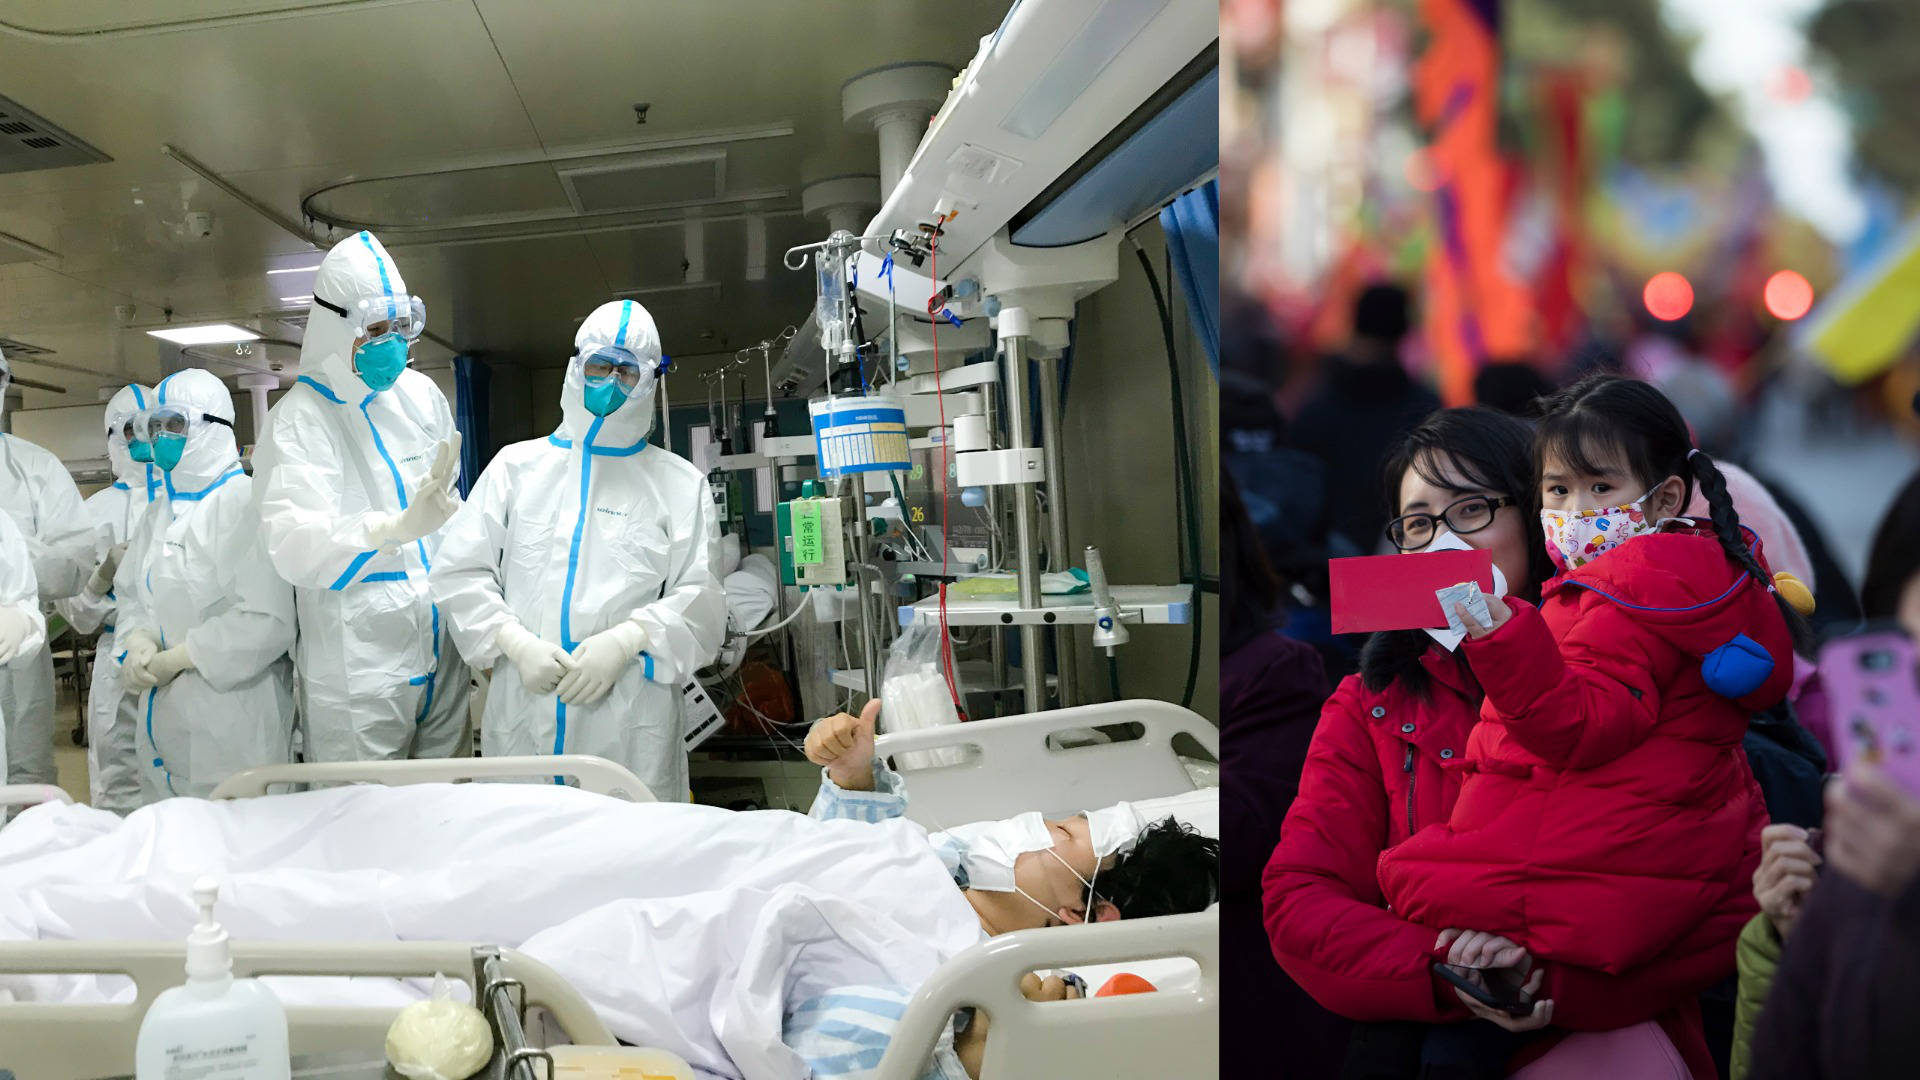 Coronavirus death toll 106 as battle to contain outbreak continues